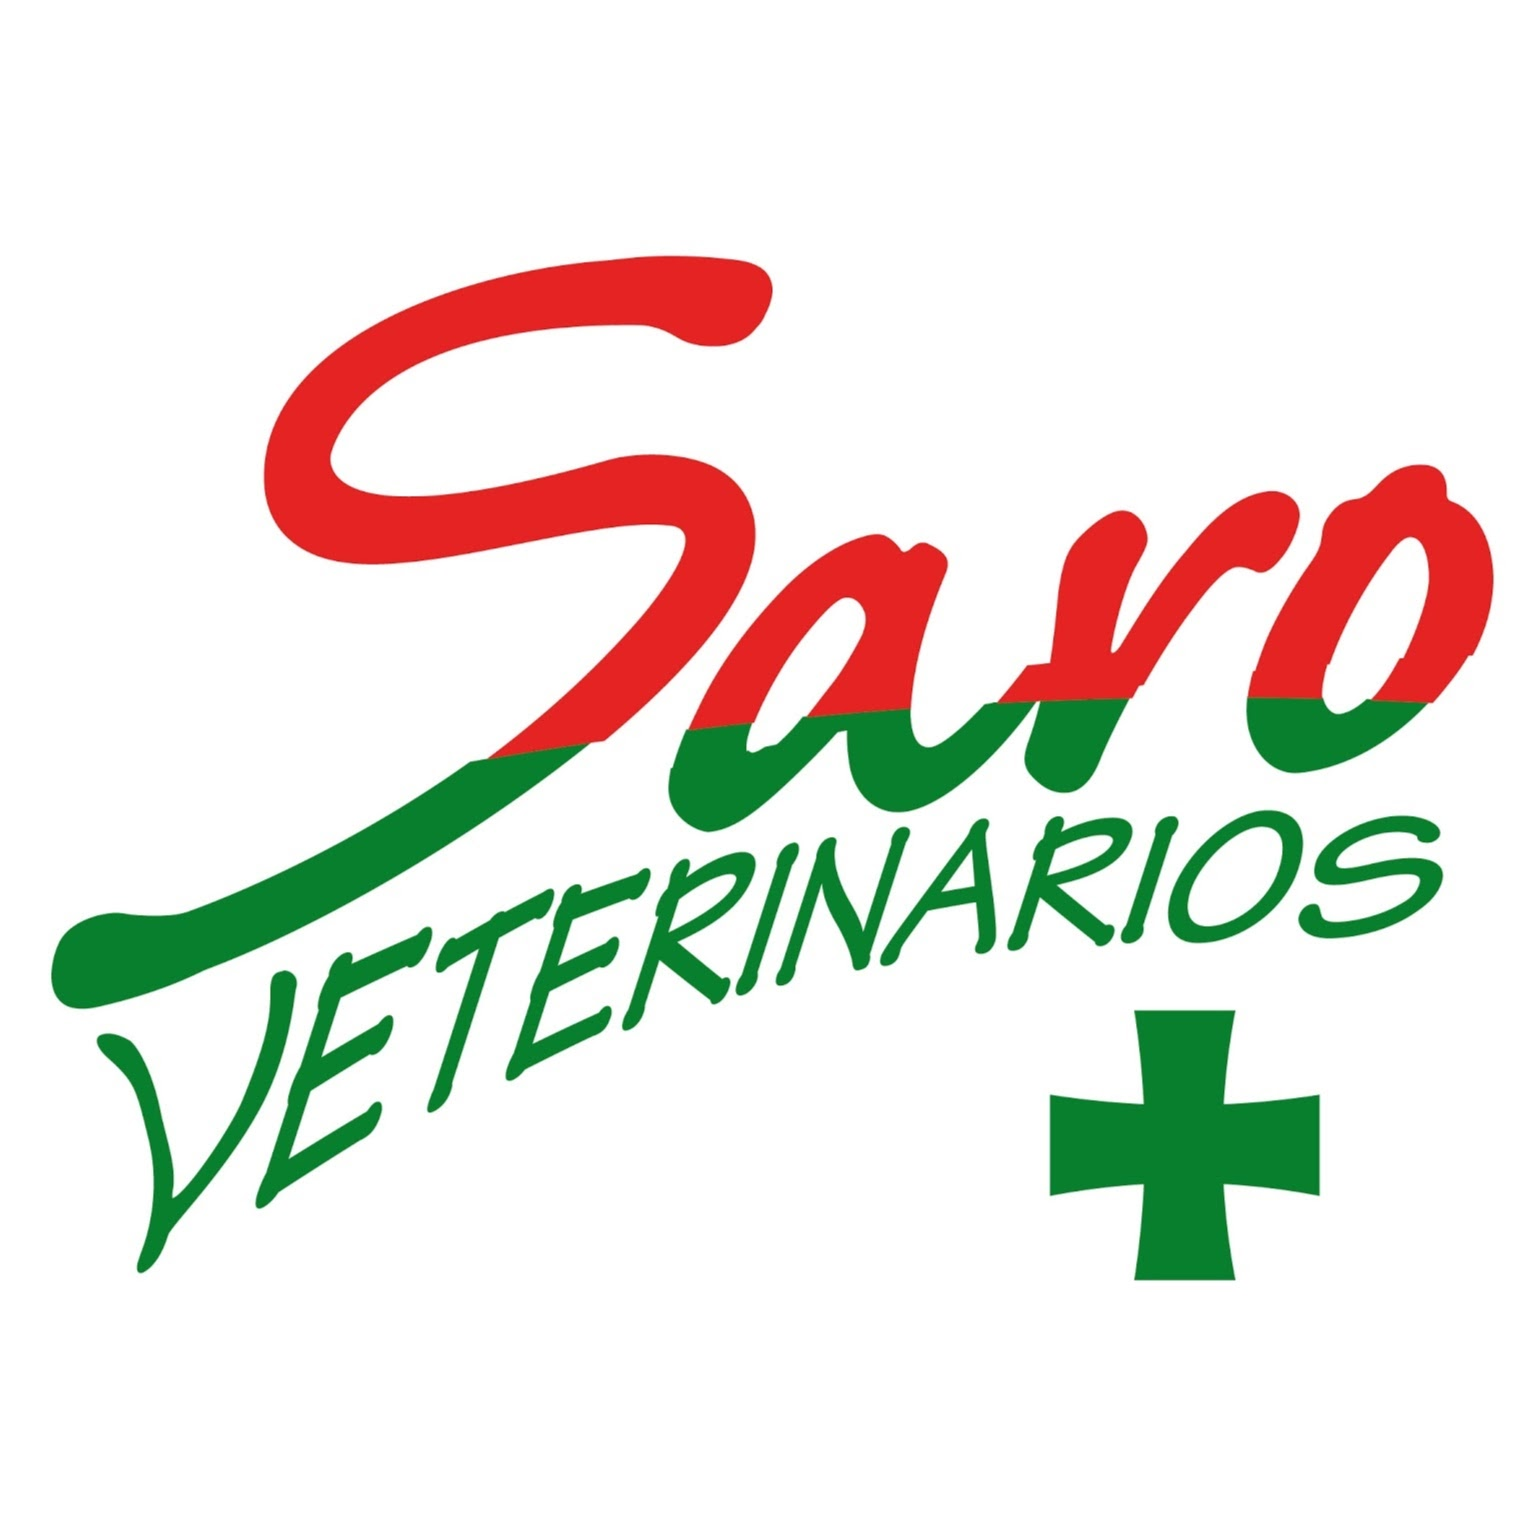 Saro Veterinarios